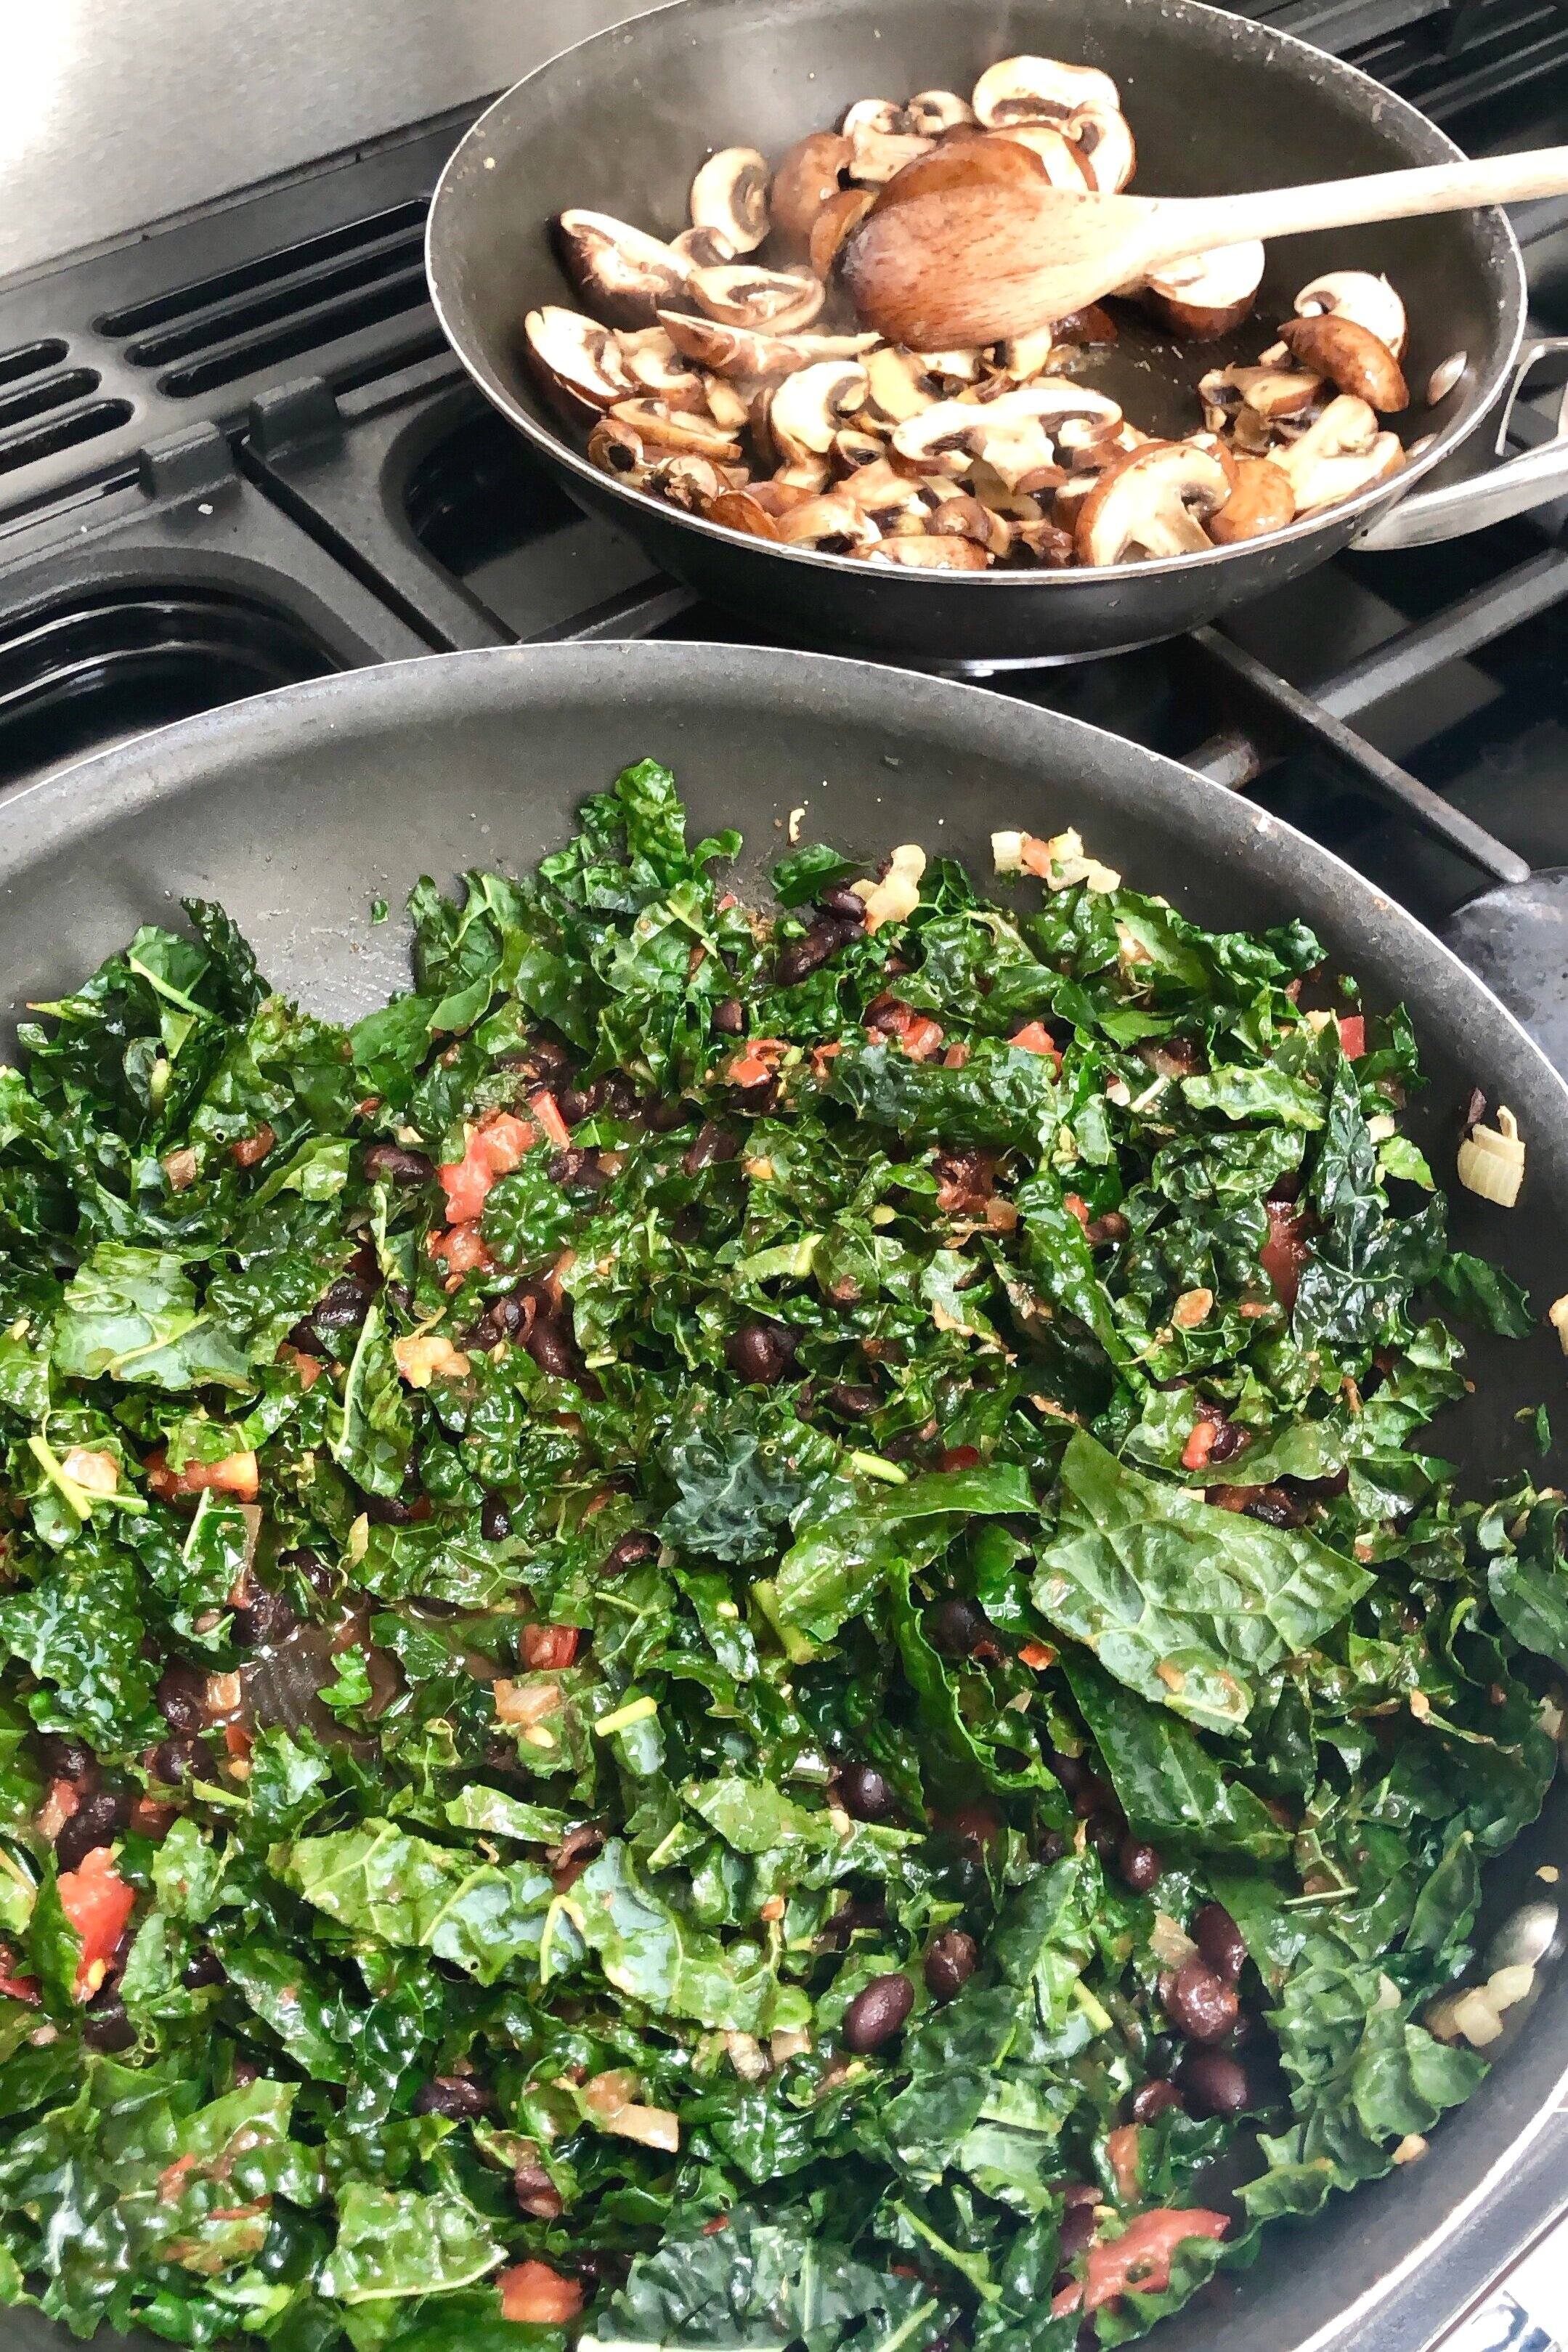 Add the greens to the beans and cook your mushrooms